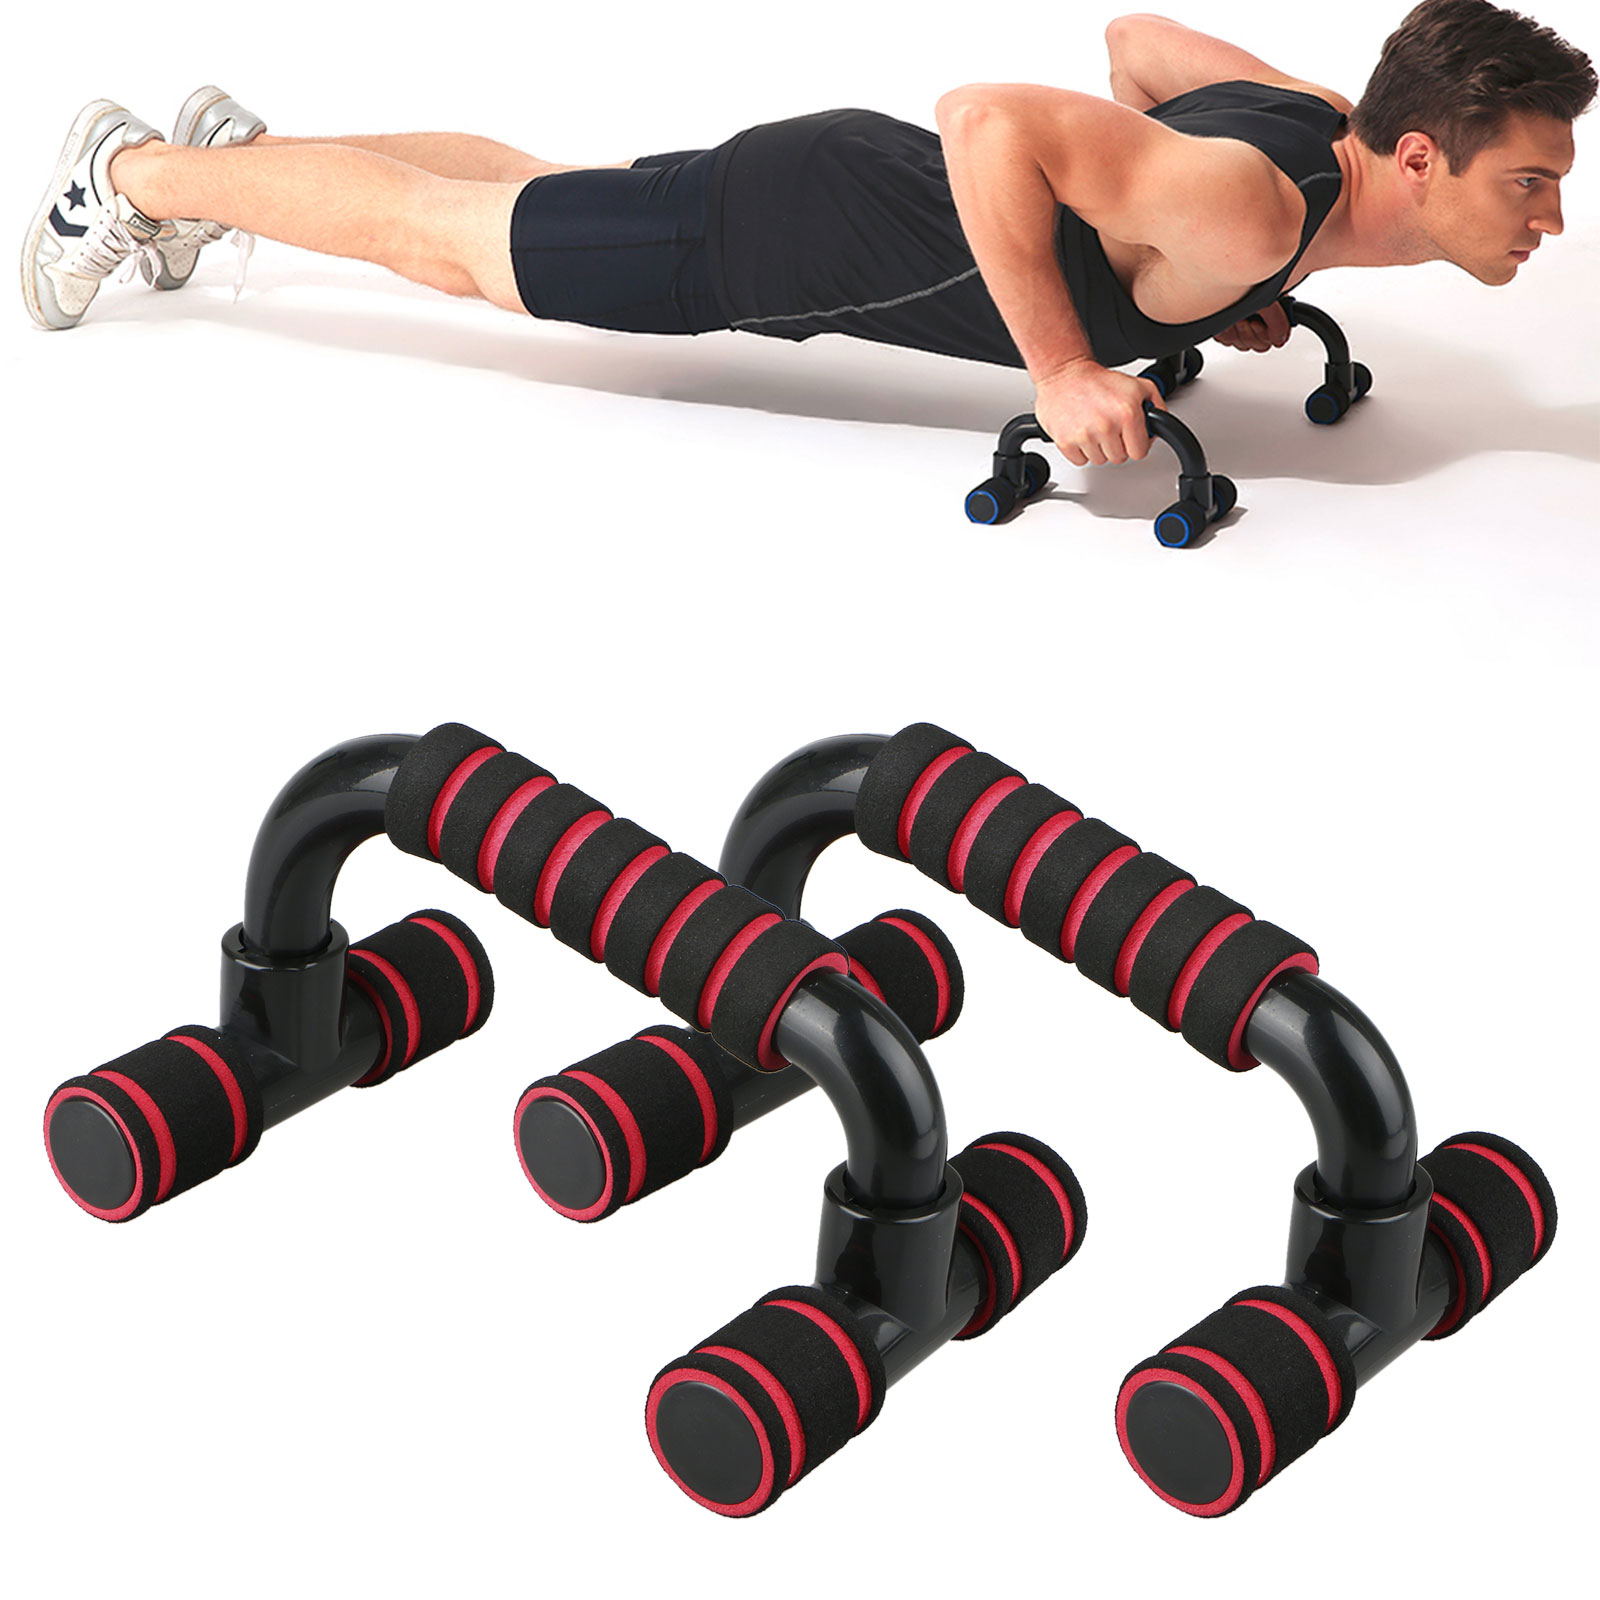 Perfect Muscle Push up Pushup Bars Stands Handles Fitness Equipment for Push-Up Exercise Home Workout Fat Burning & Full Body Training for Chest & Arms Tool